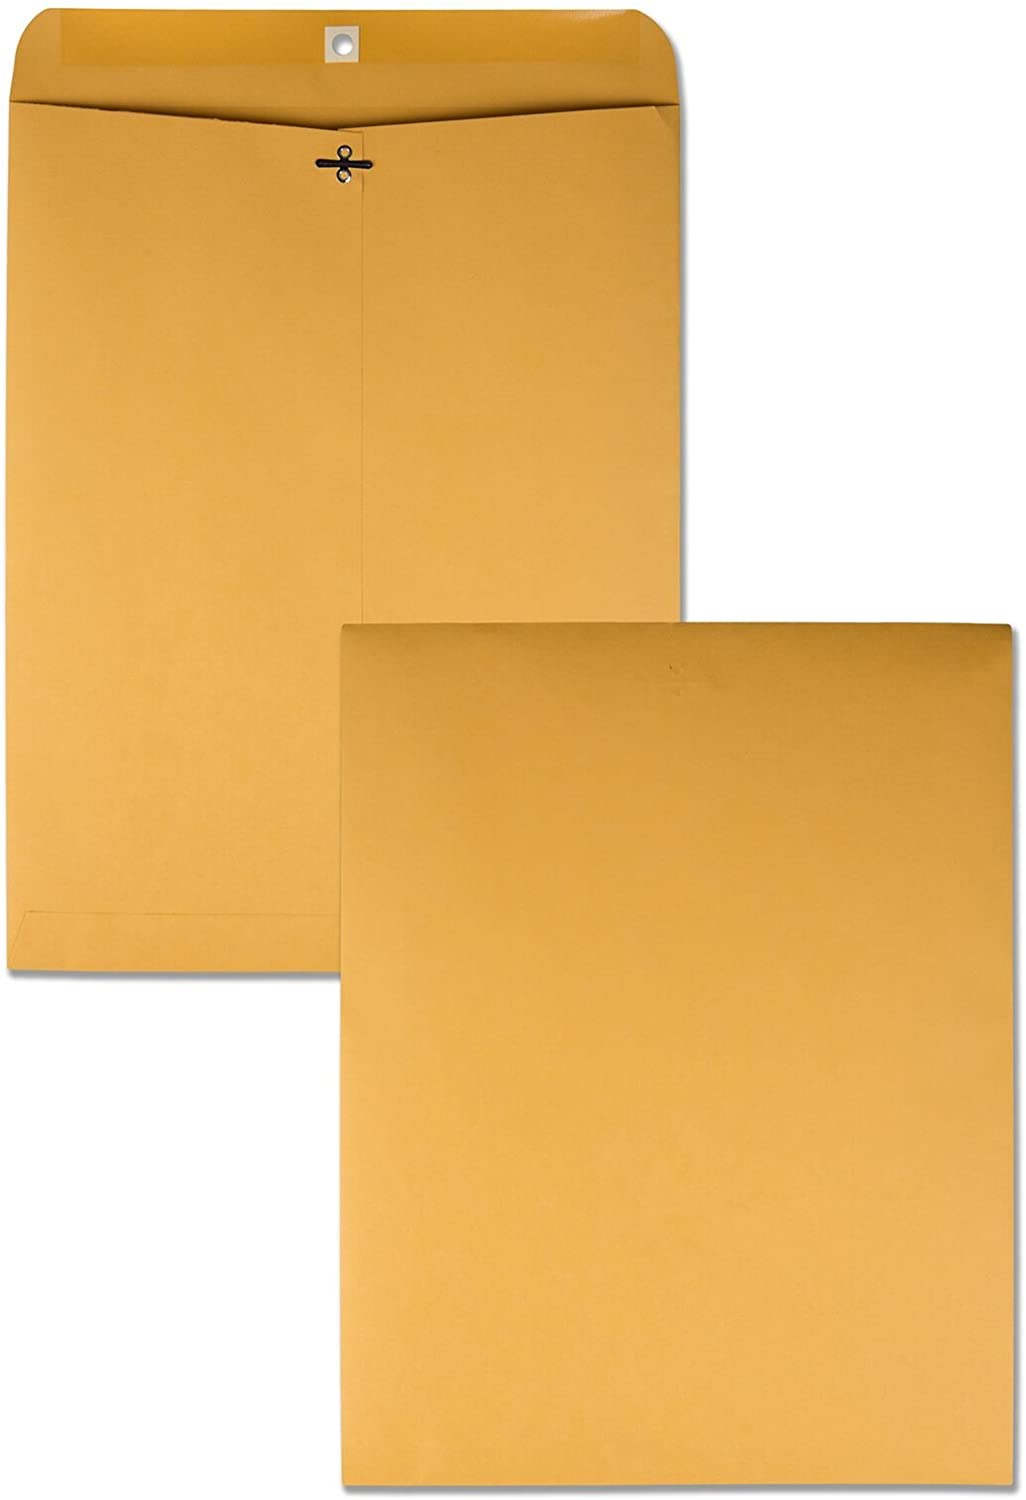 Quality Park 12 x 15-1/2 Clasp Envelopes, Clasp and Gummed Closures, for Oversized Papers, Drawings or Posters, 28 lb Kraft Paper, 100/Box (QUA37810) : Office Products